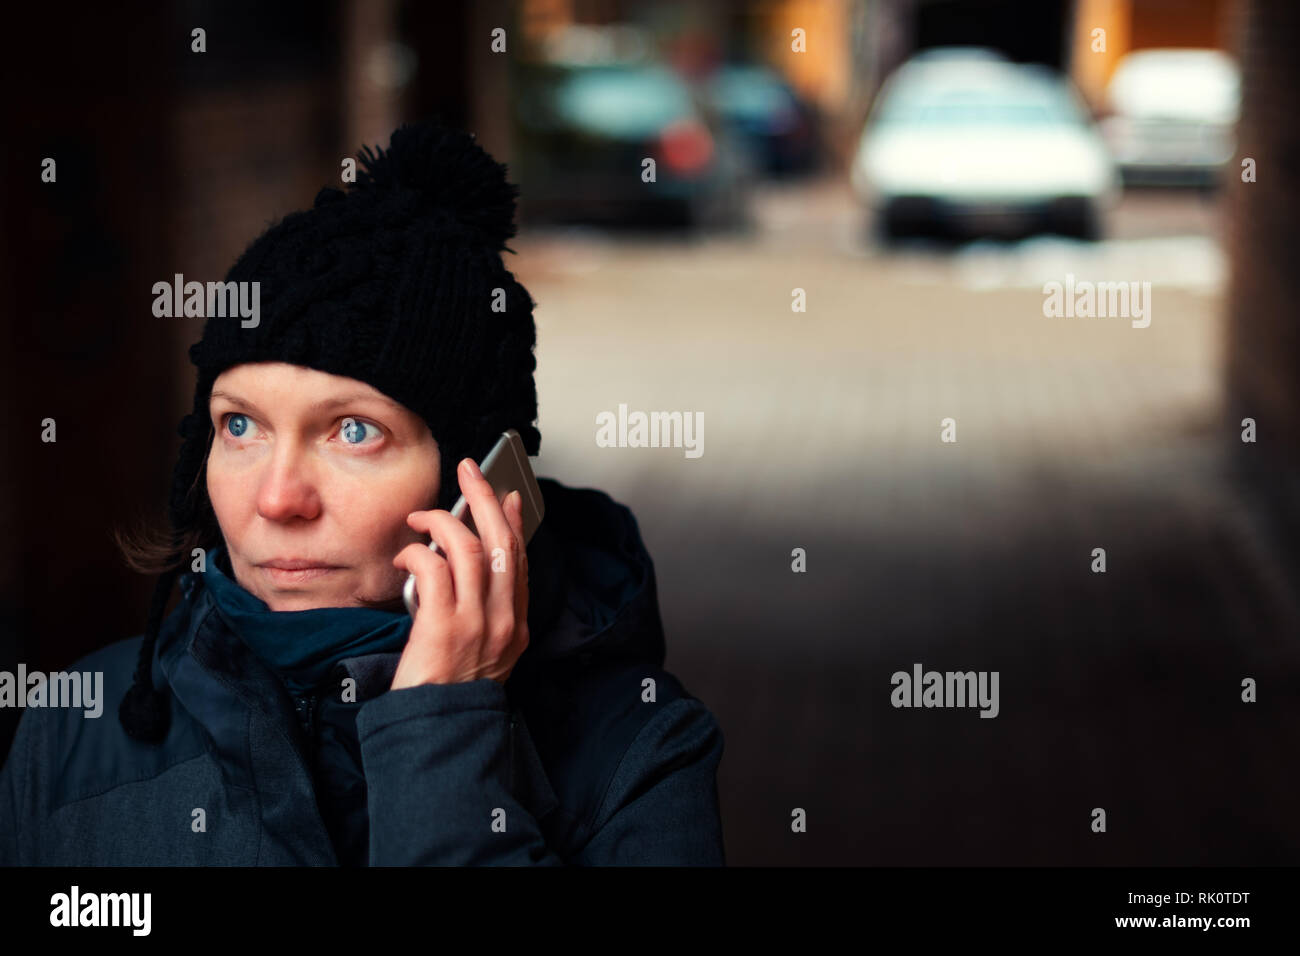 Concerned worried woman talking on mobile phone on street on cold winter day Stock Photo